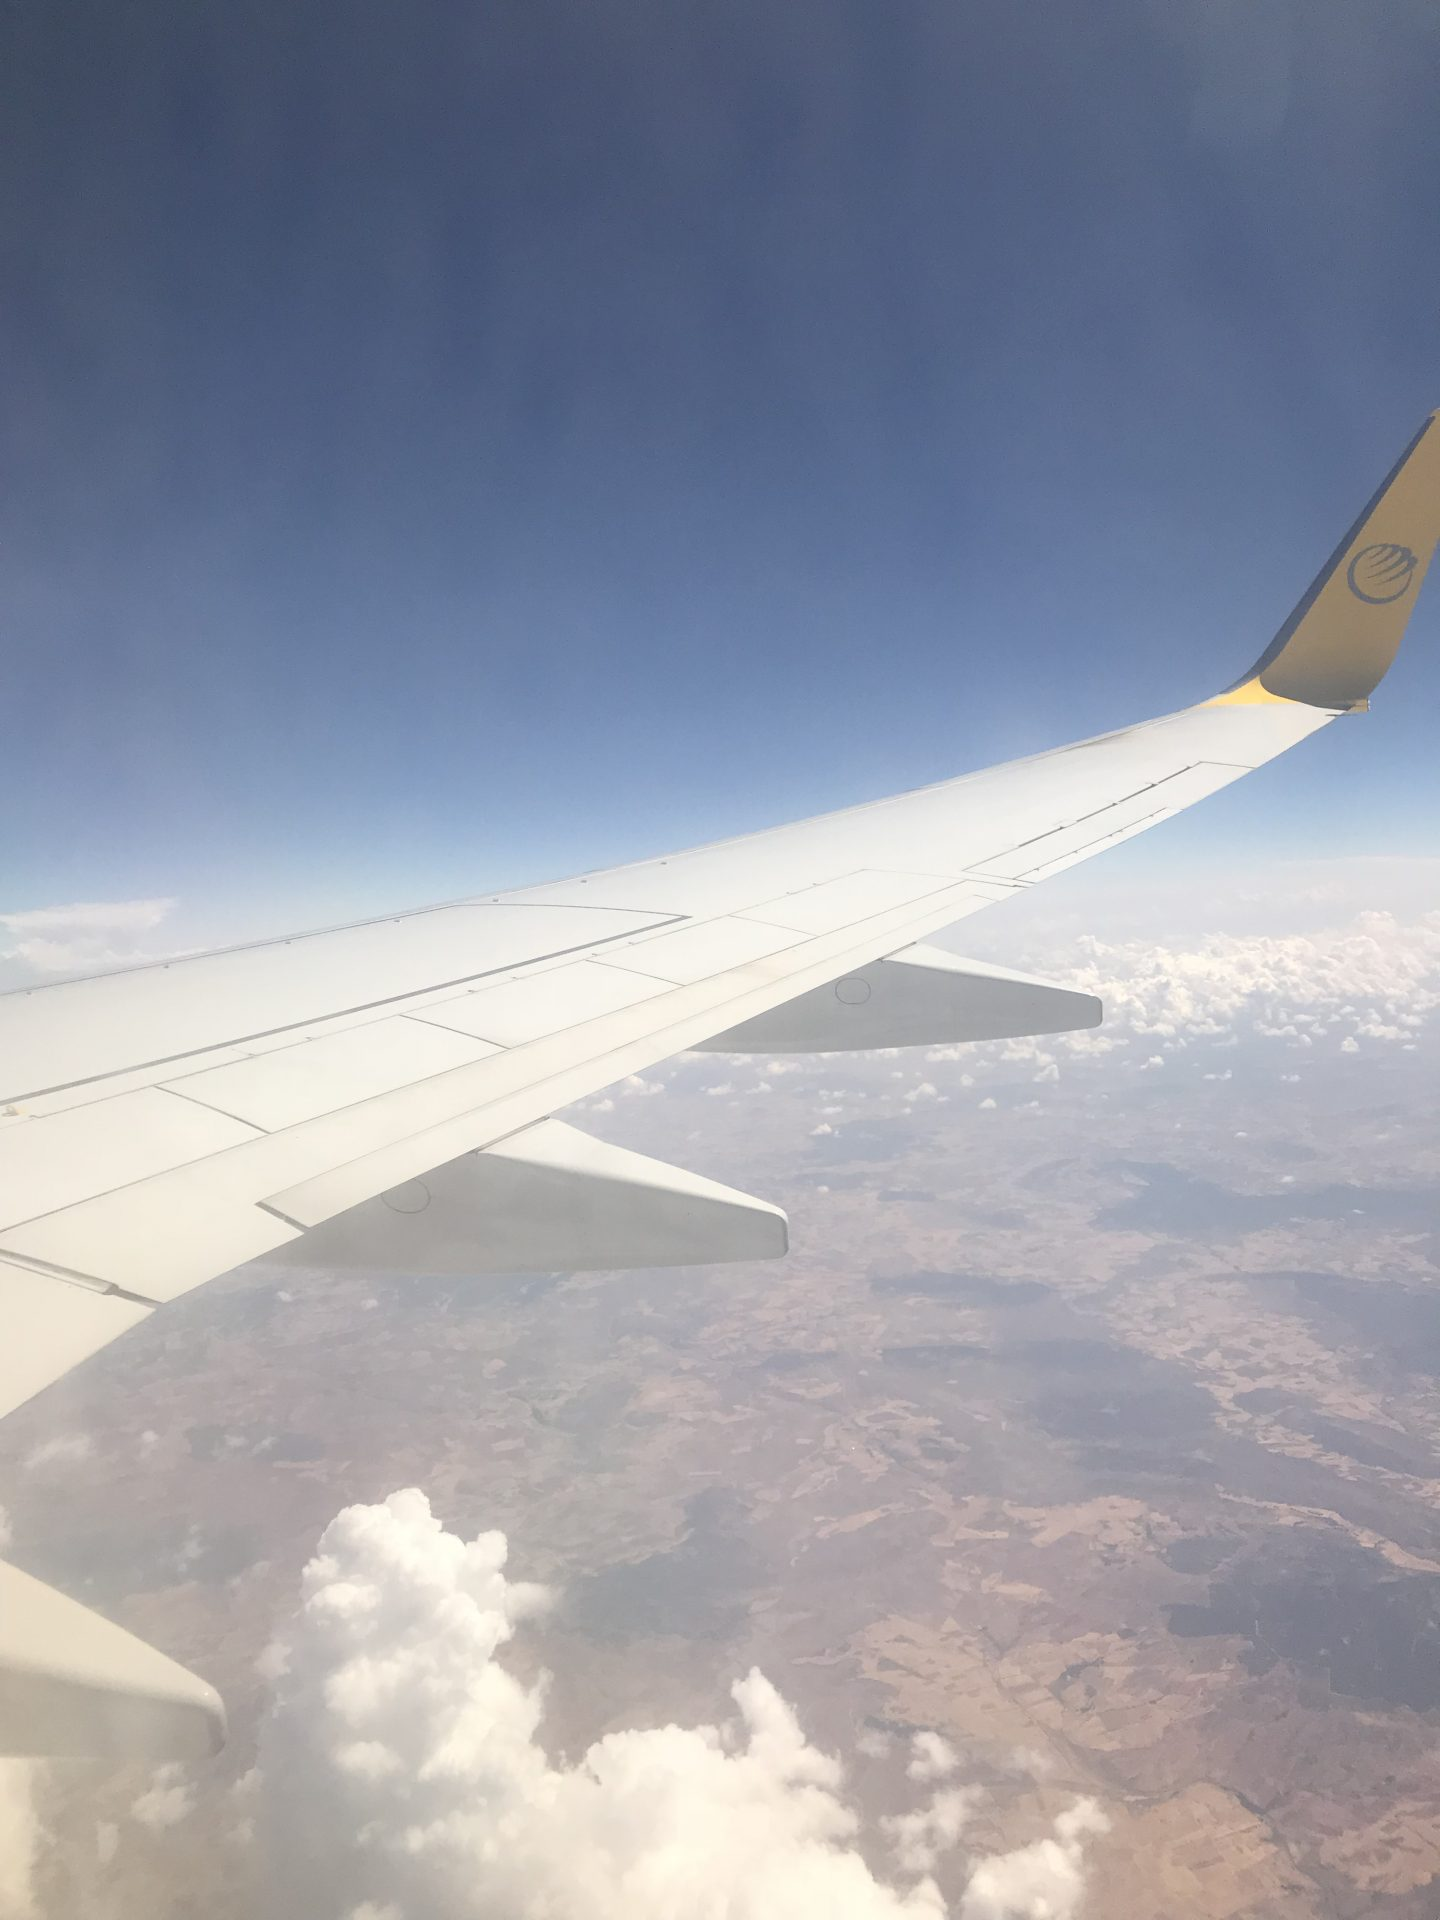 Tips for dealing with a fear of flying